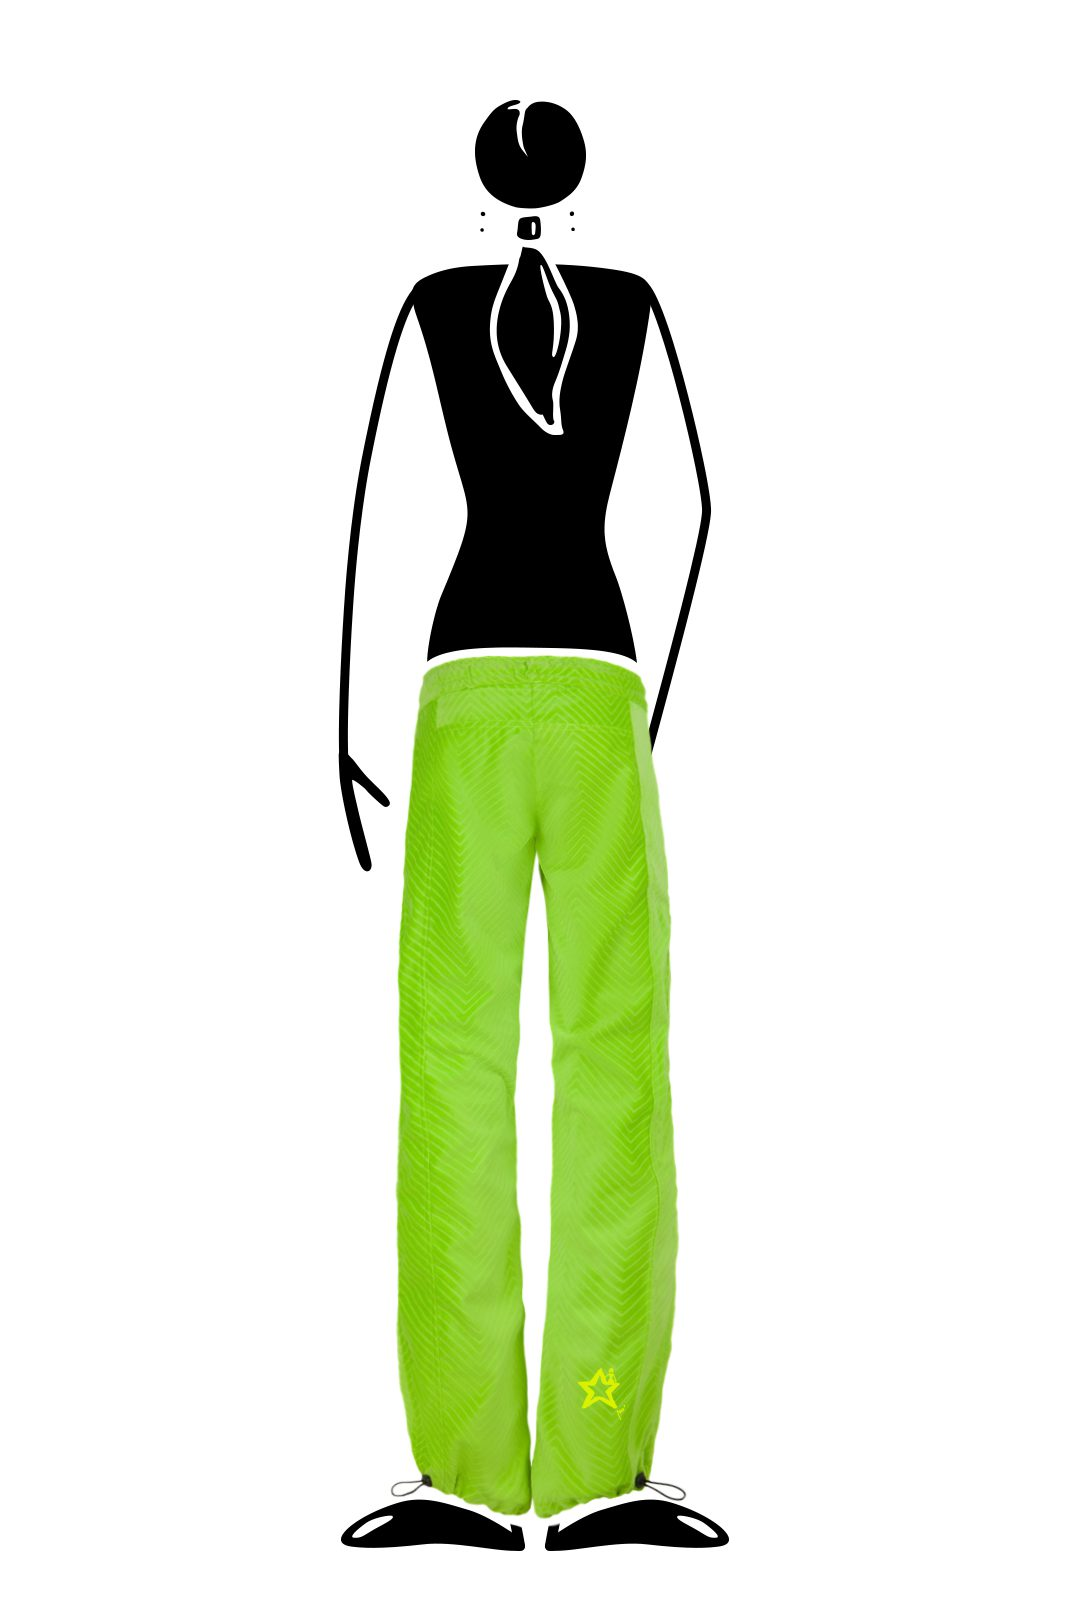 Women's Climbing trousers in soft stretch corduroy green lime VIOLET VELVET Monvic for sports